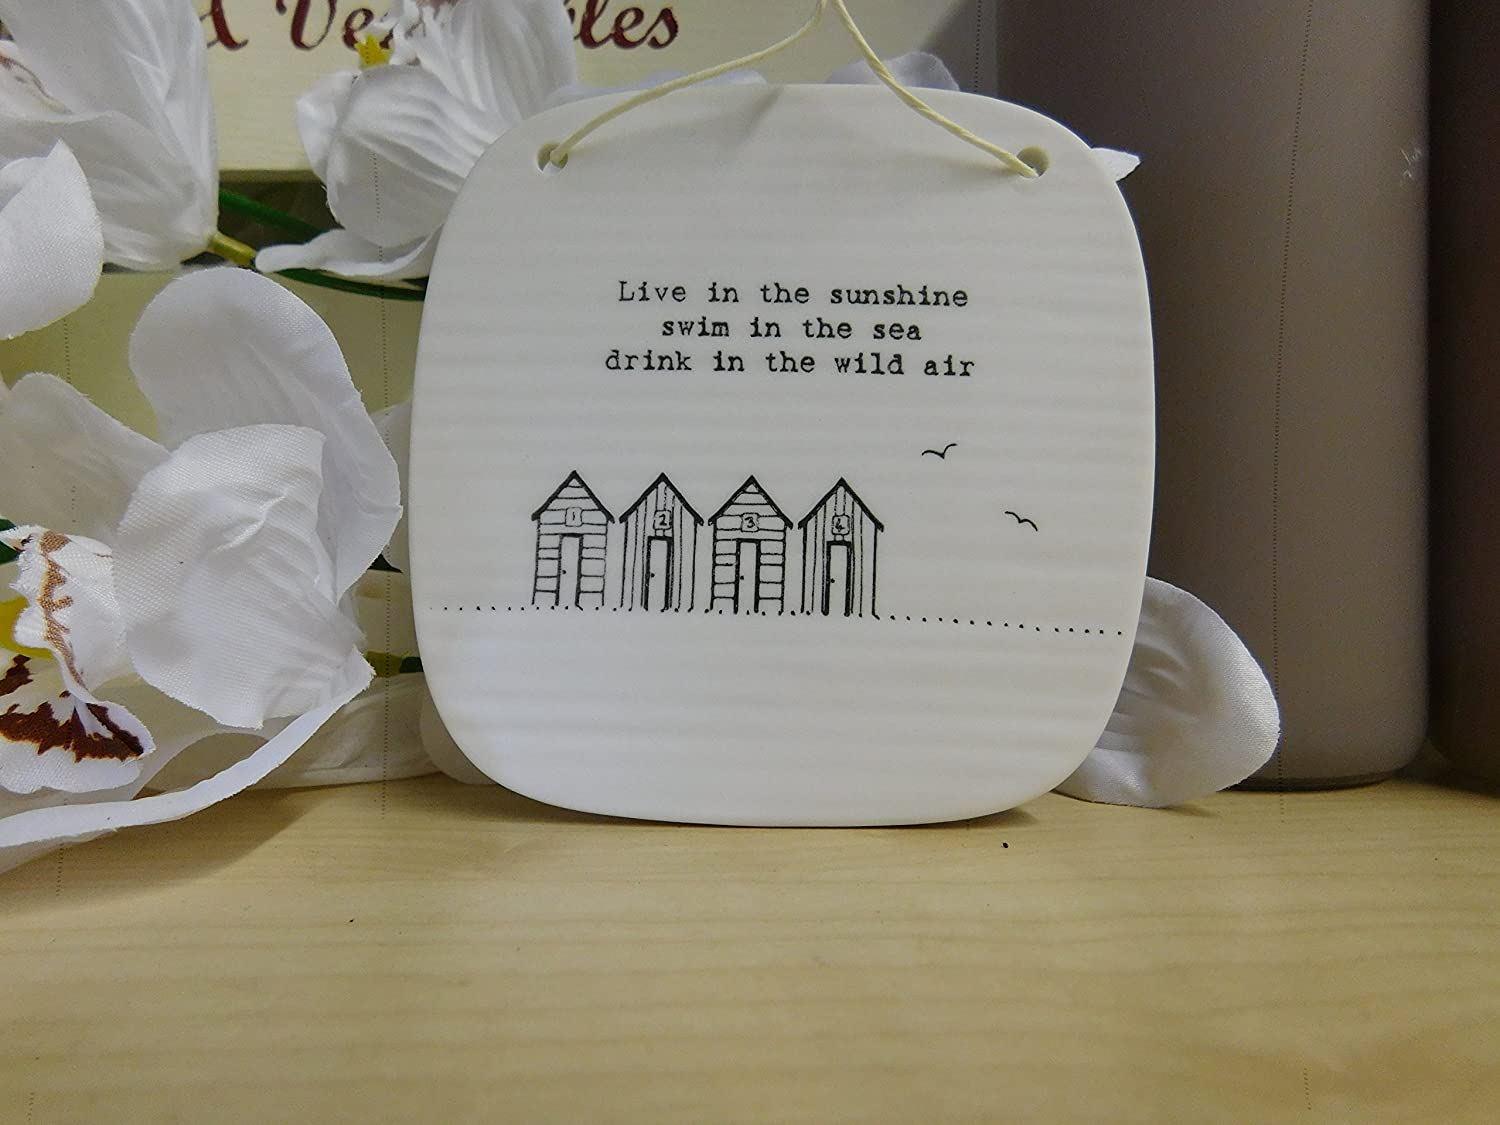 'Life is meant for good friends and great adventures' Square Porcelain Hanging Picture Plaque by East of India 9.5cm x 9.5xm